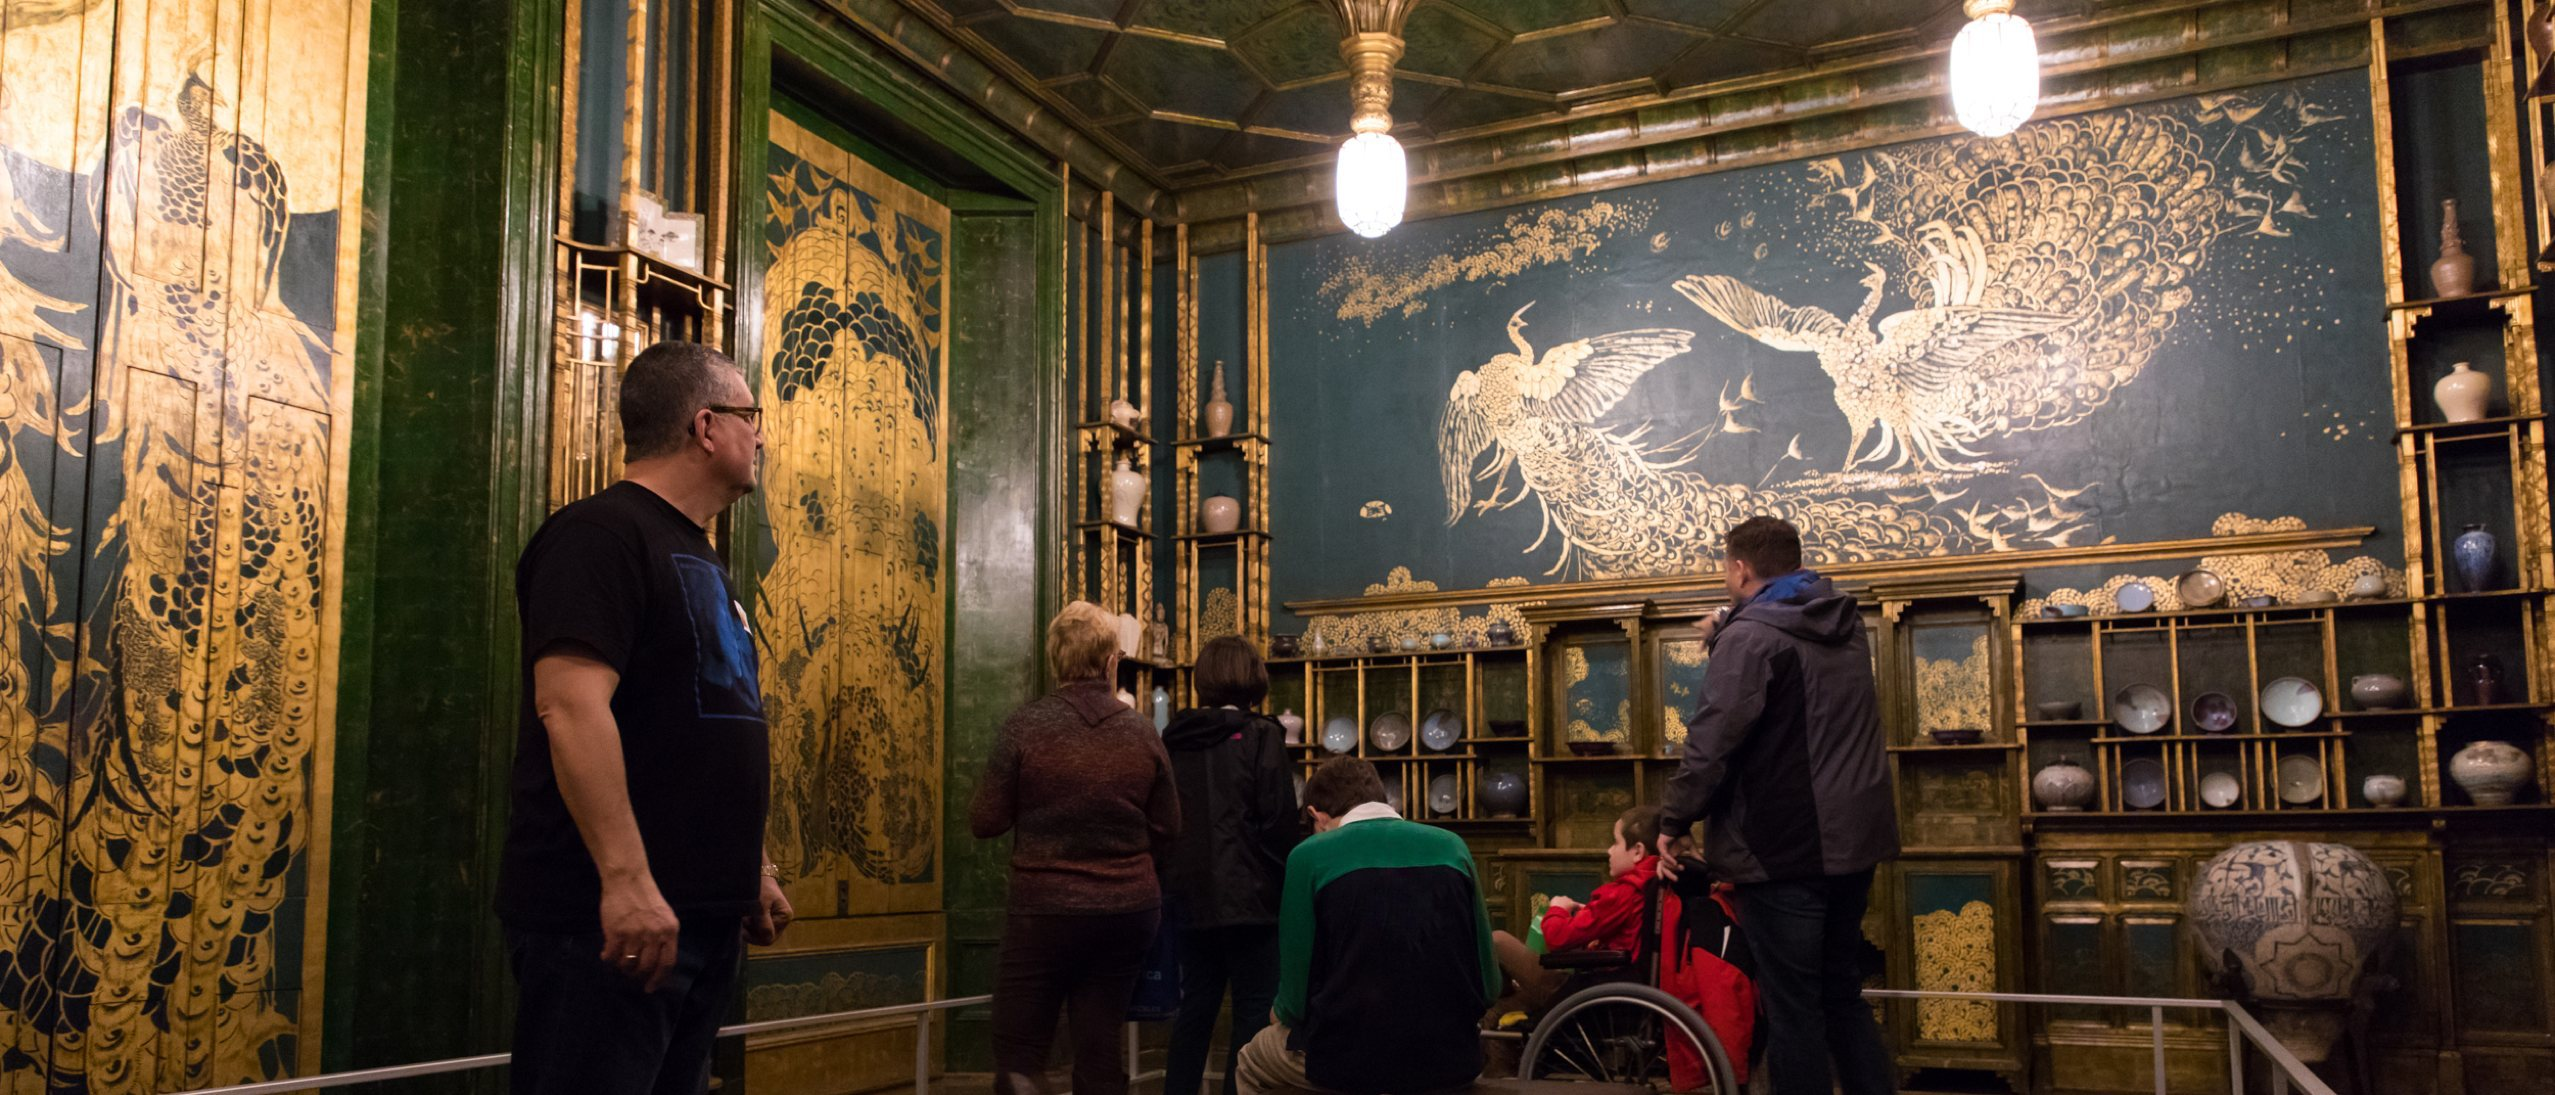 a group of visitors admiring the Peacock Room during a Morning at the Museum event